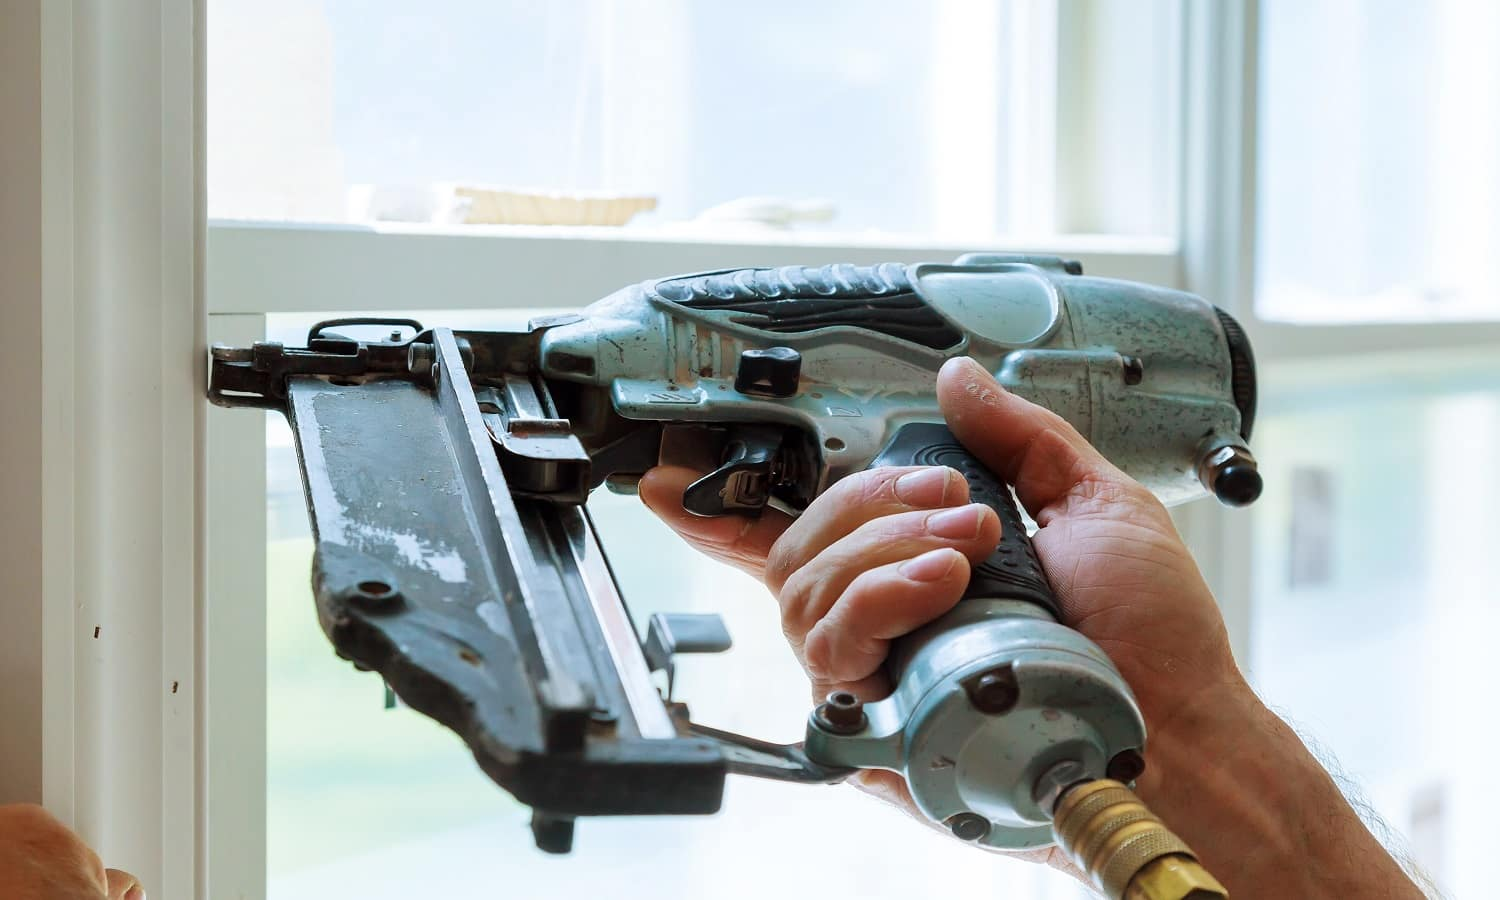 Carpenter brad using nail gun to moldings on windows, framing trim, with the warning label that all power tools have on them shown illustrating safety concept